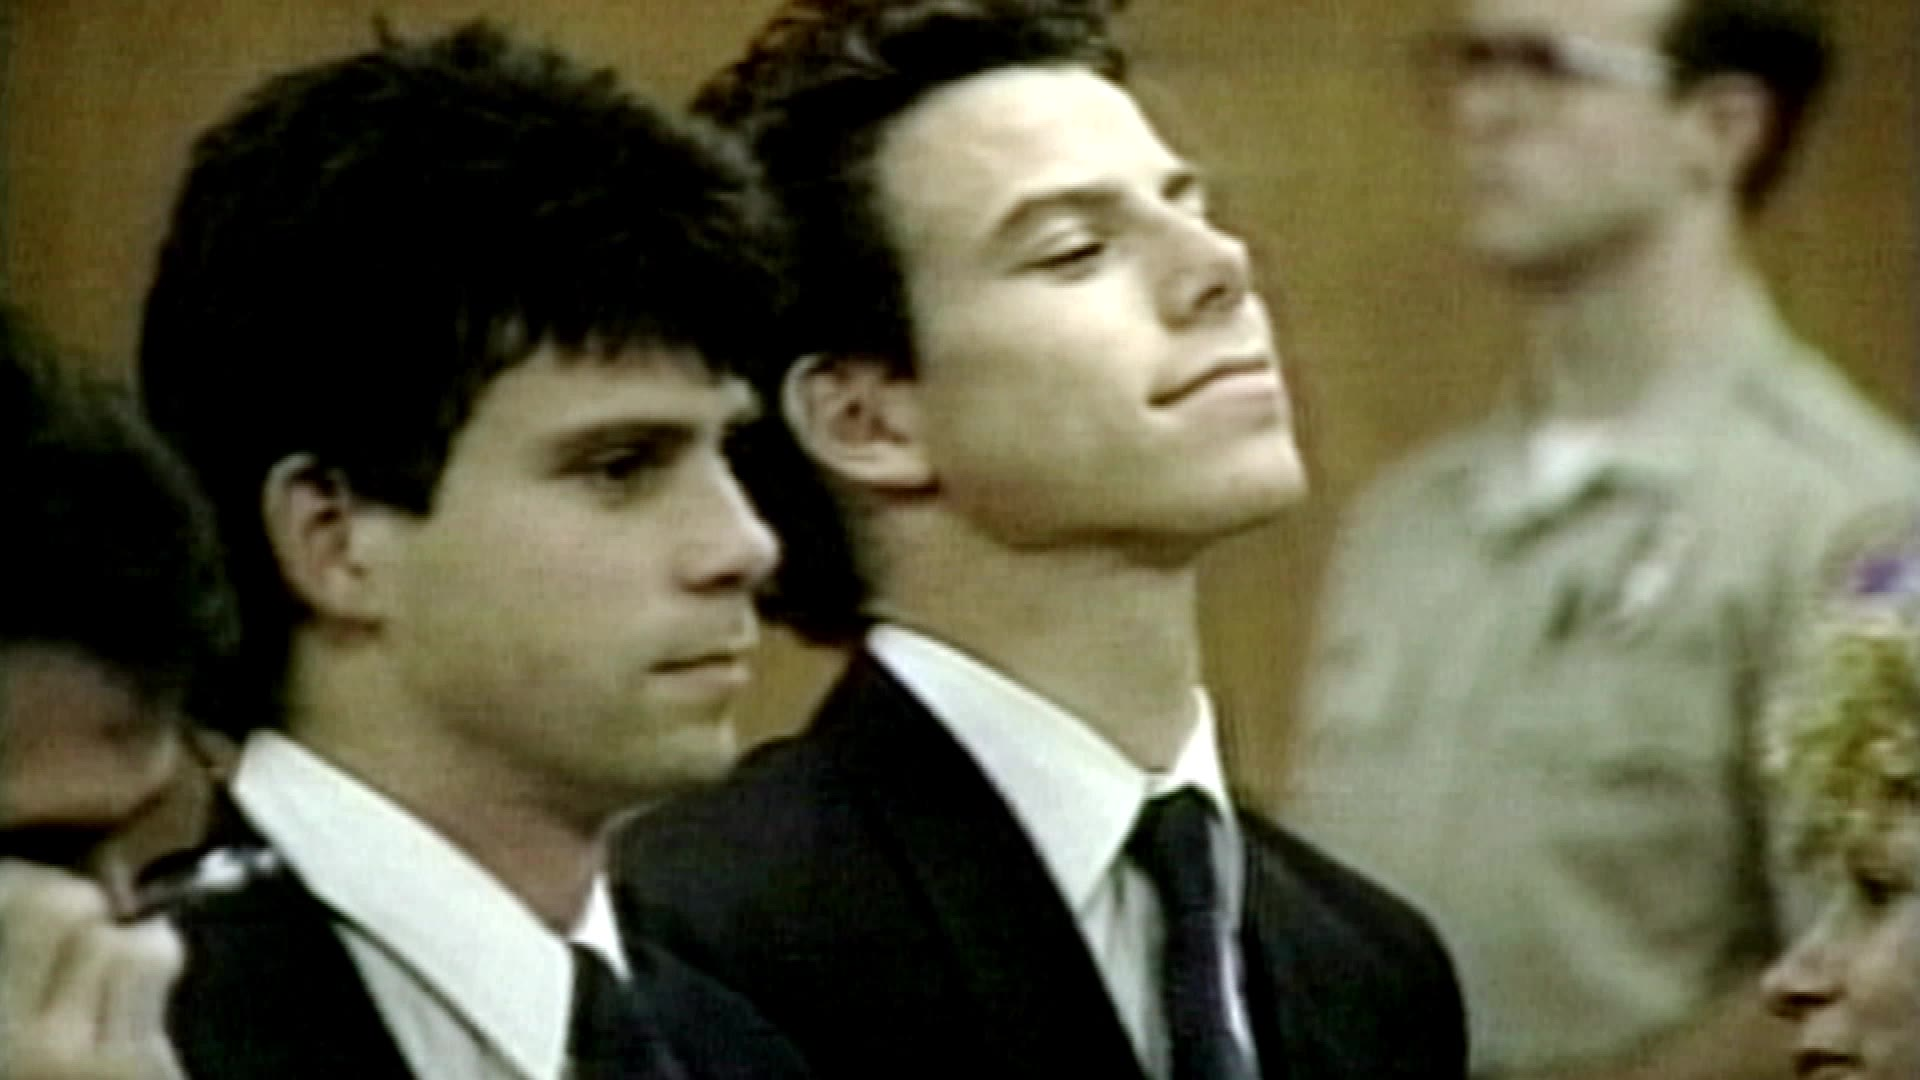 Menendez brothers scene crime photos